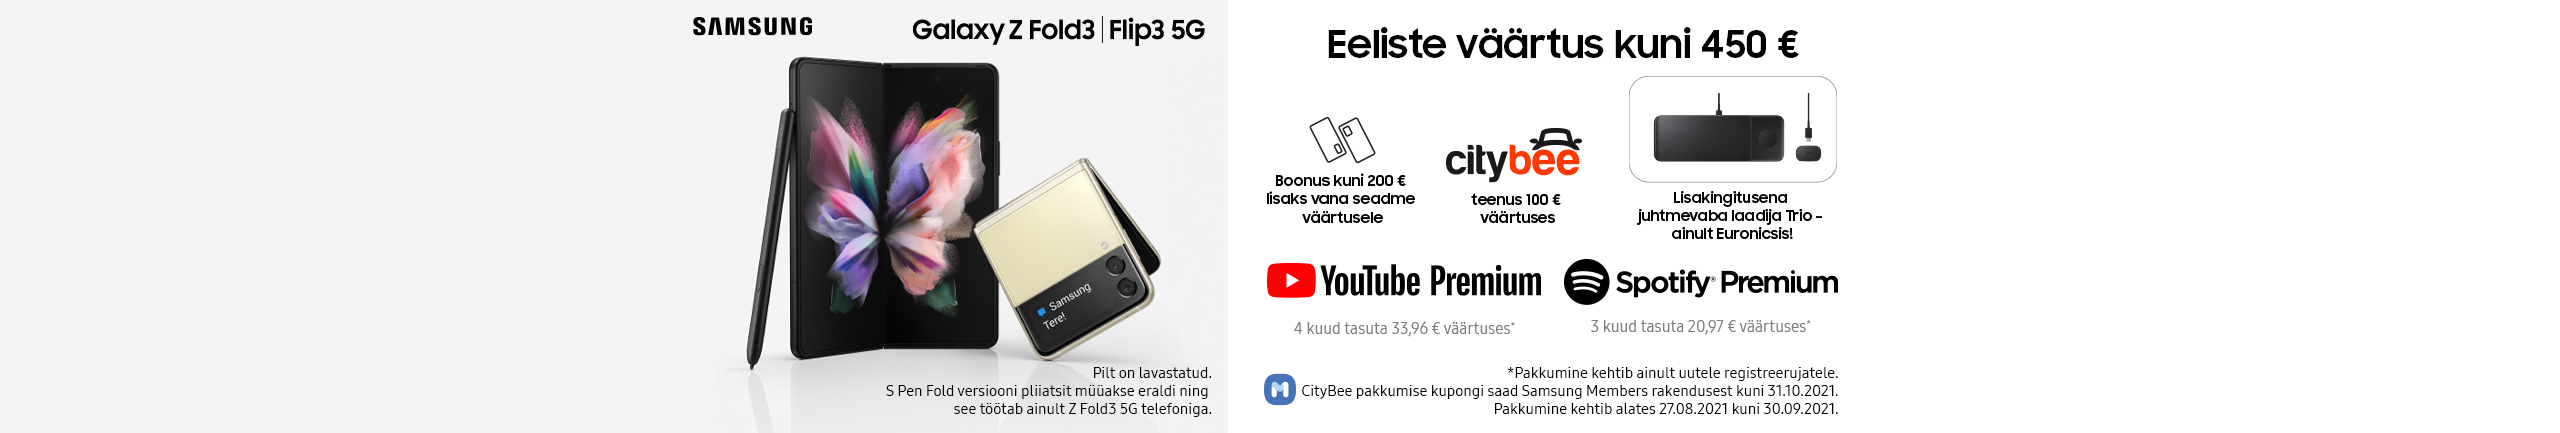 Buy Samsung Galaxy Z Flip 3 or Z Fold 3 and get a wireless charger trio as a complimentary gift!